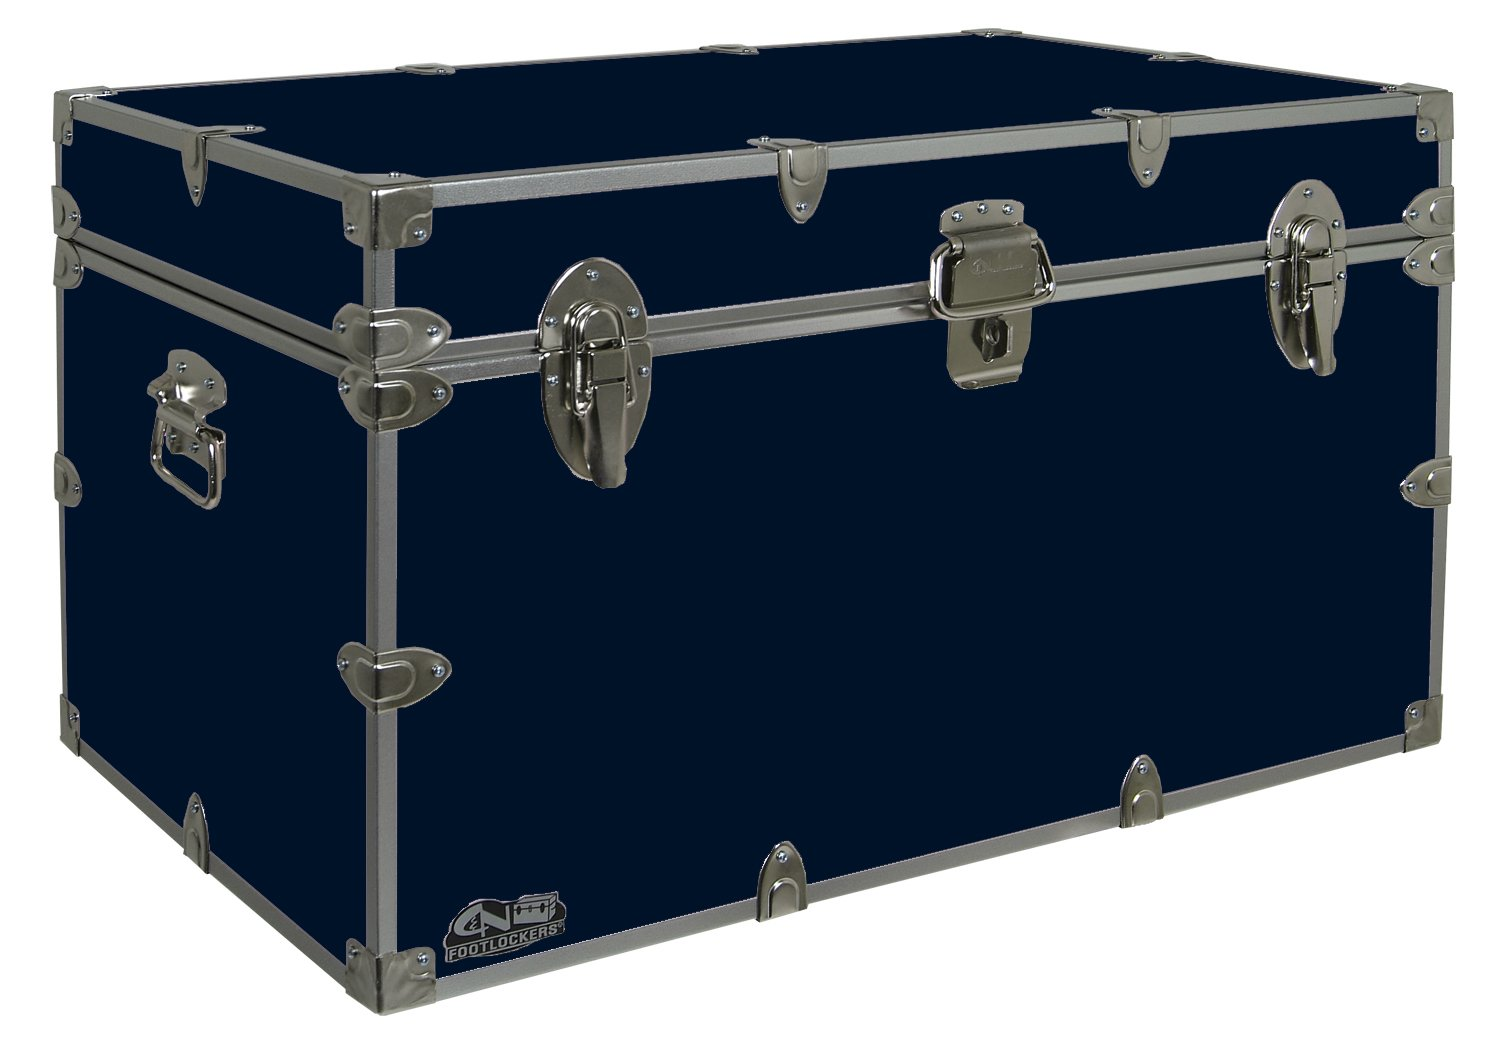 C&N Footlockers Graduate Storage Trunk - Large College Dorm Chest - Durable with Lid Stay - 32 x 18 x 18.5 Inches (Navy) by C&N Footlockers